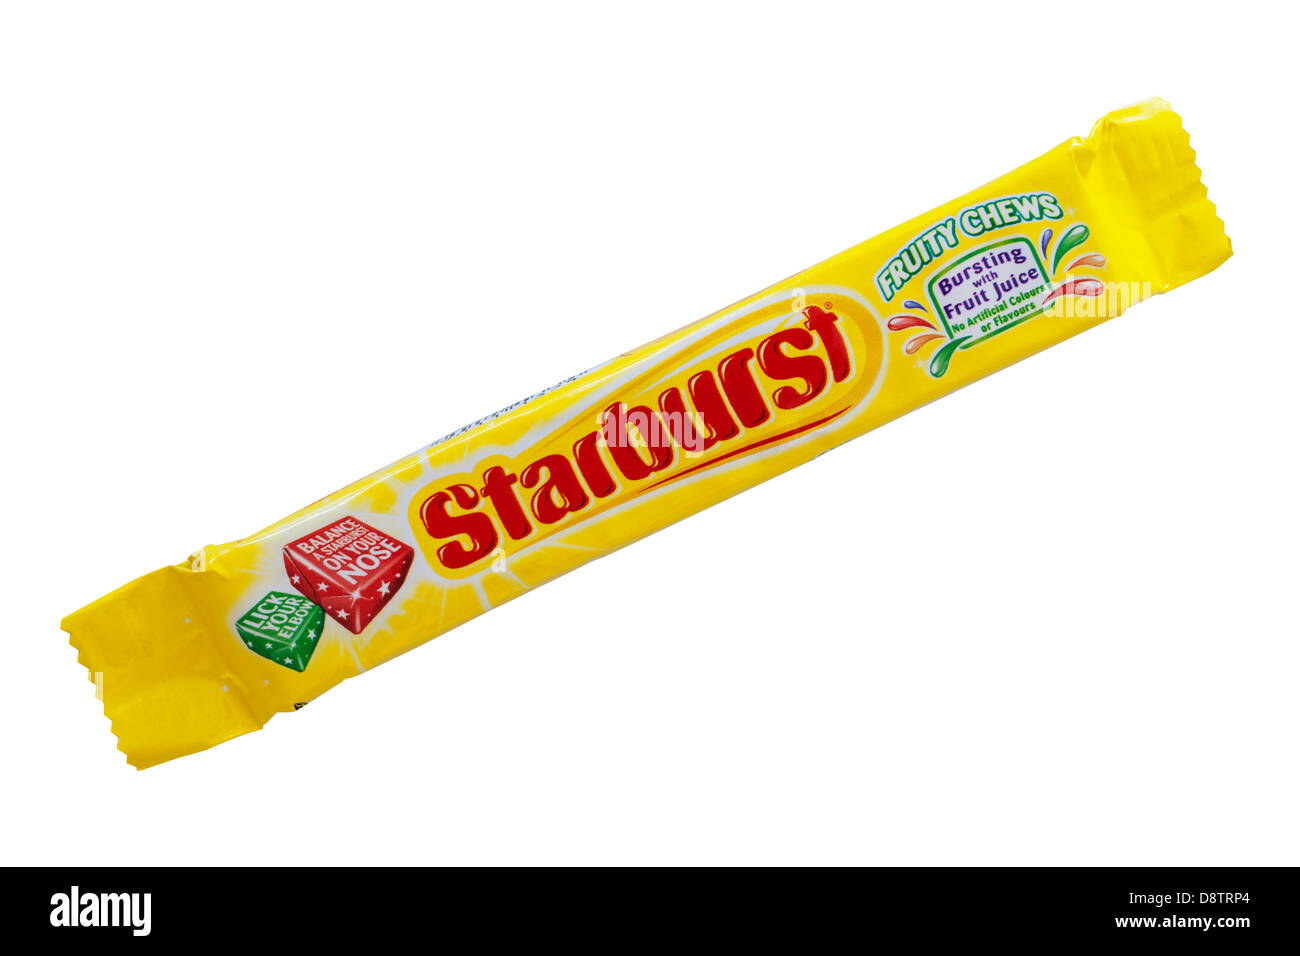 A packet of Starburst fruit chews sweets on a white background - Stock Image